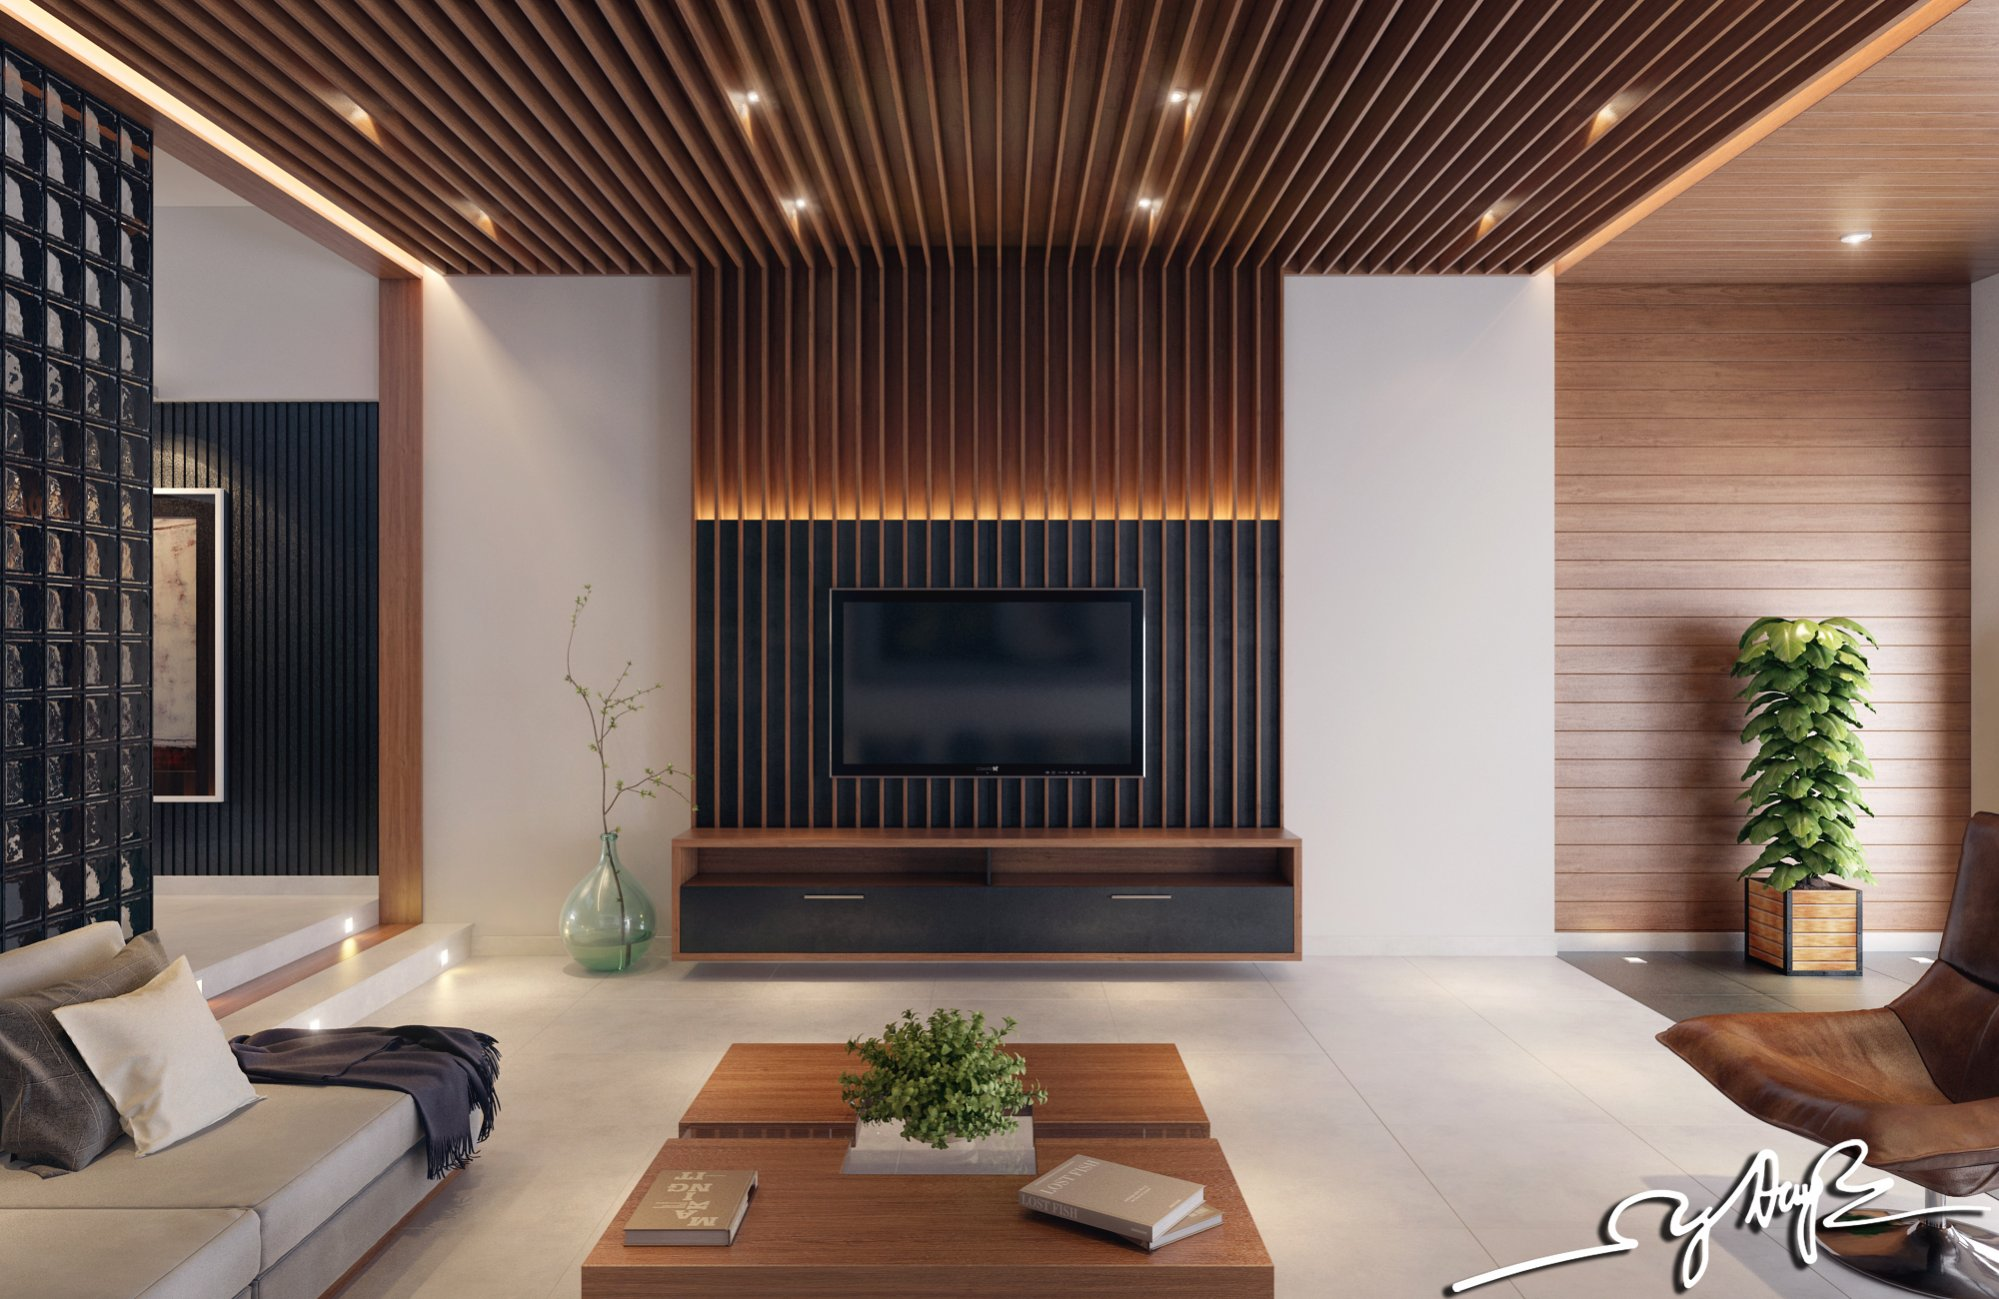 Good Interior Design Close To Nature: Rich Wood Themes And Indoor Vertical  Gardens